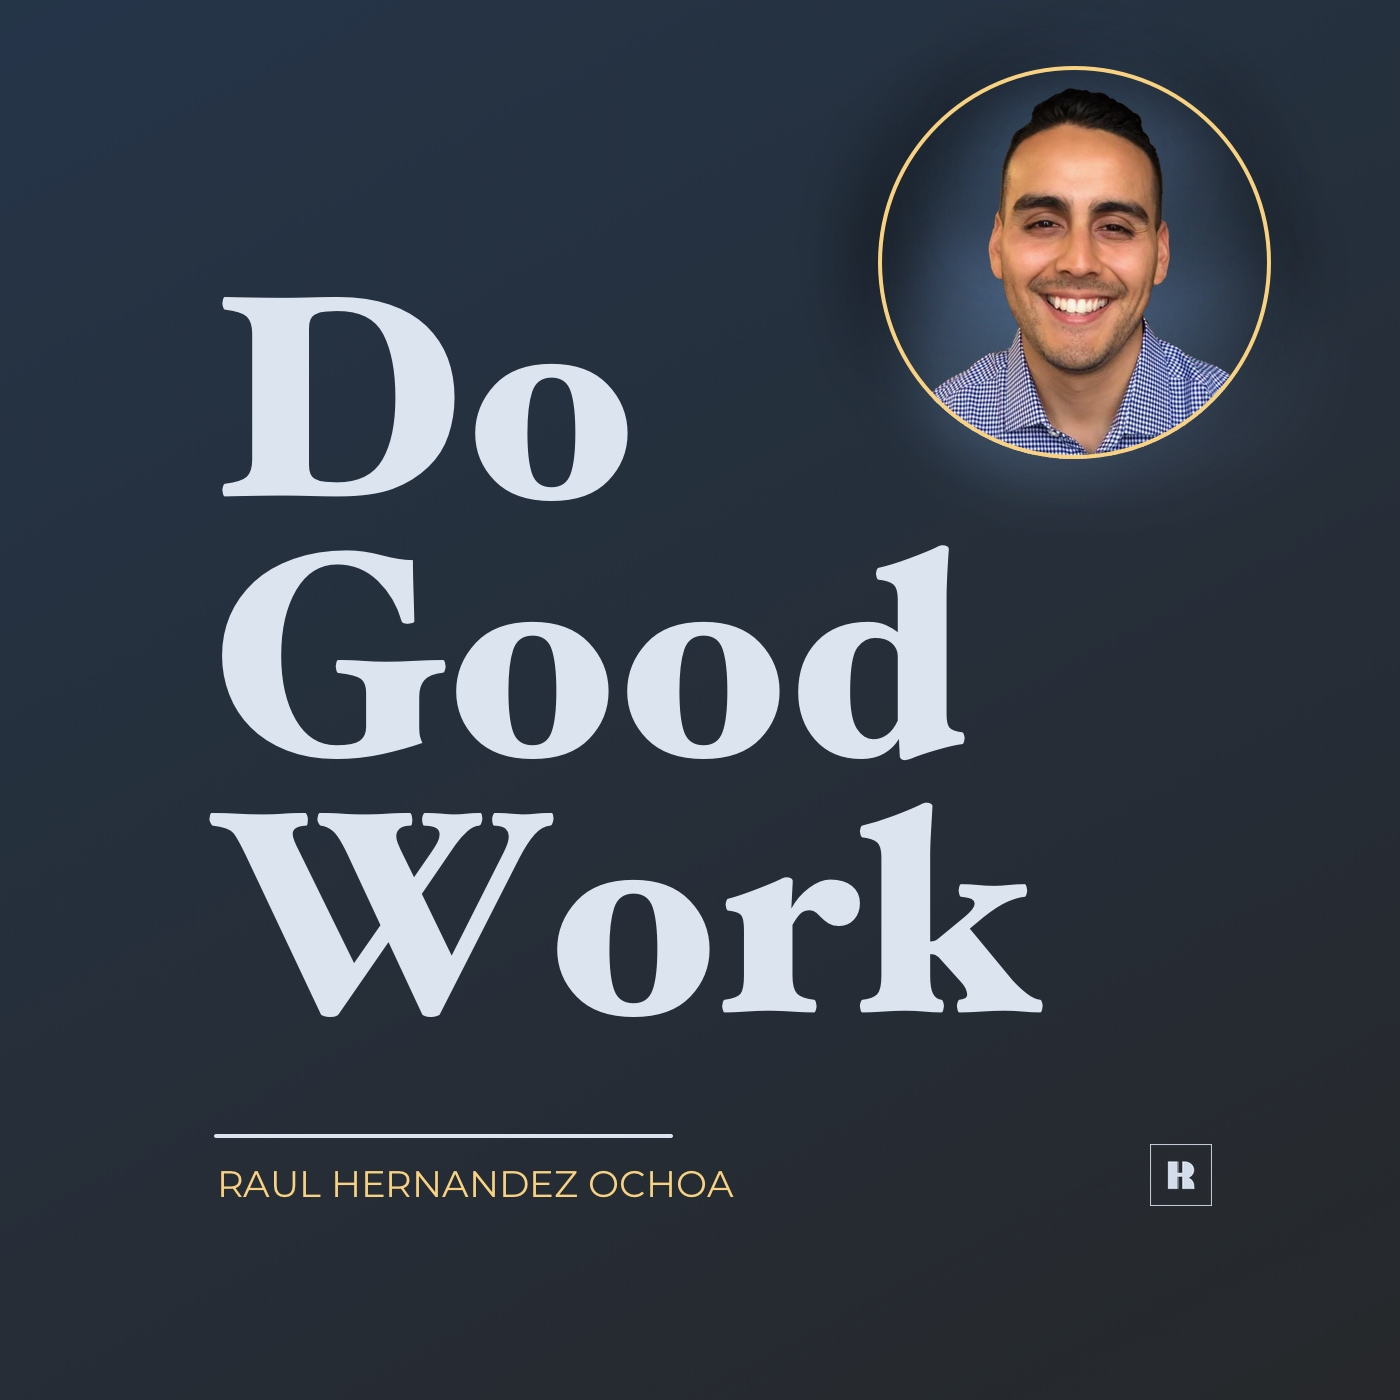 Do Good Work - Raul Hernandez Ochoa